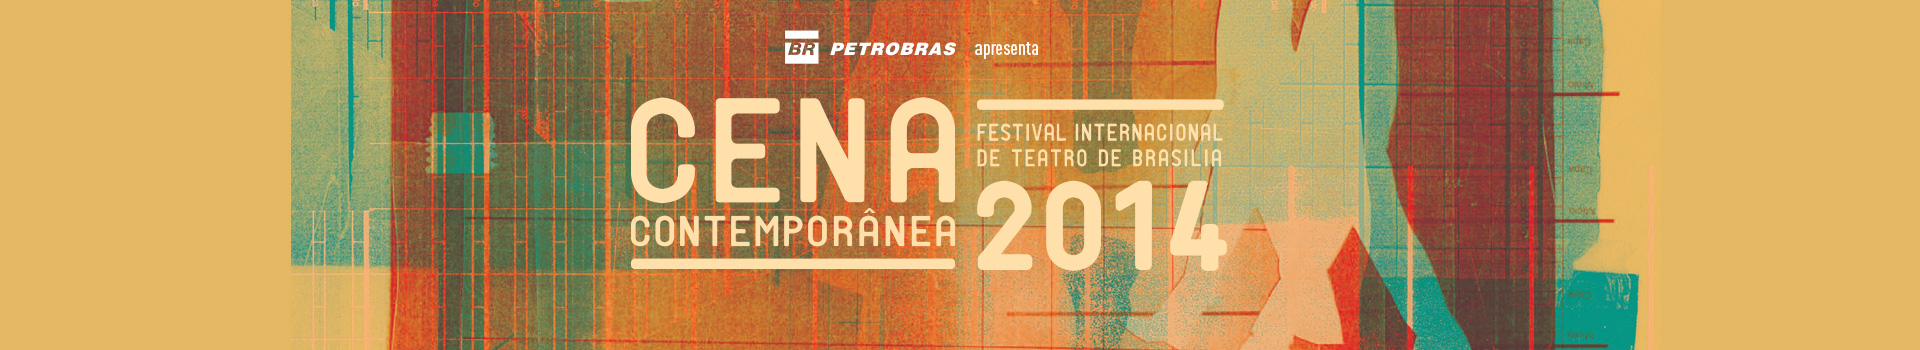 Cena Contemporânea 2014